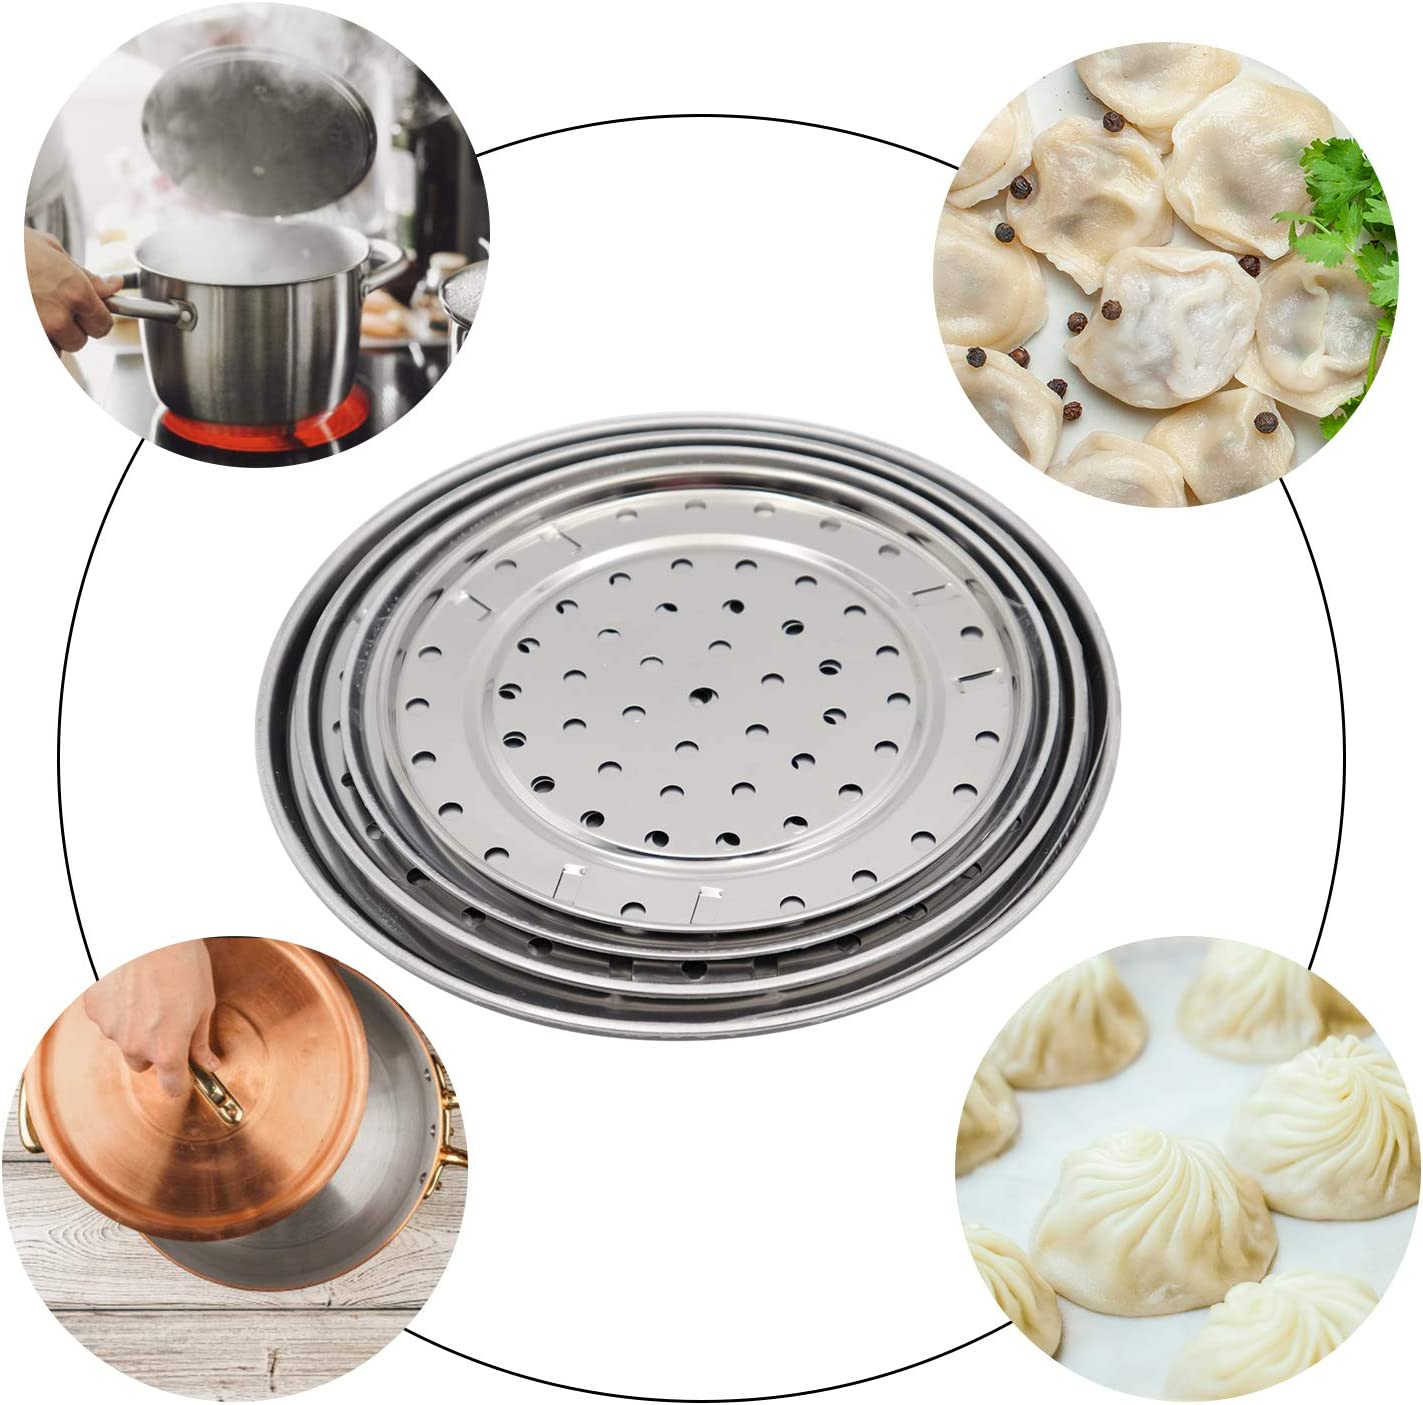 4 Pack Steamer Rack Metal Steaming Rack Tray Stand Steamer Basket Pots Steaming Stand Round Stainless Steel Steam Rack Pressure Cooker Steaming Steamer Rack for Home Kitchen Cooking 20//22//24//26cm